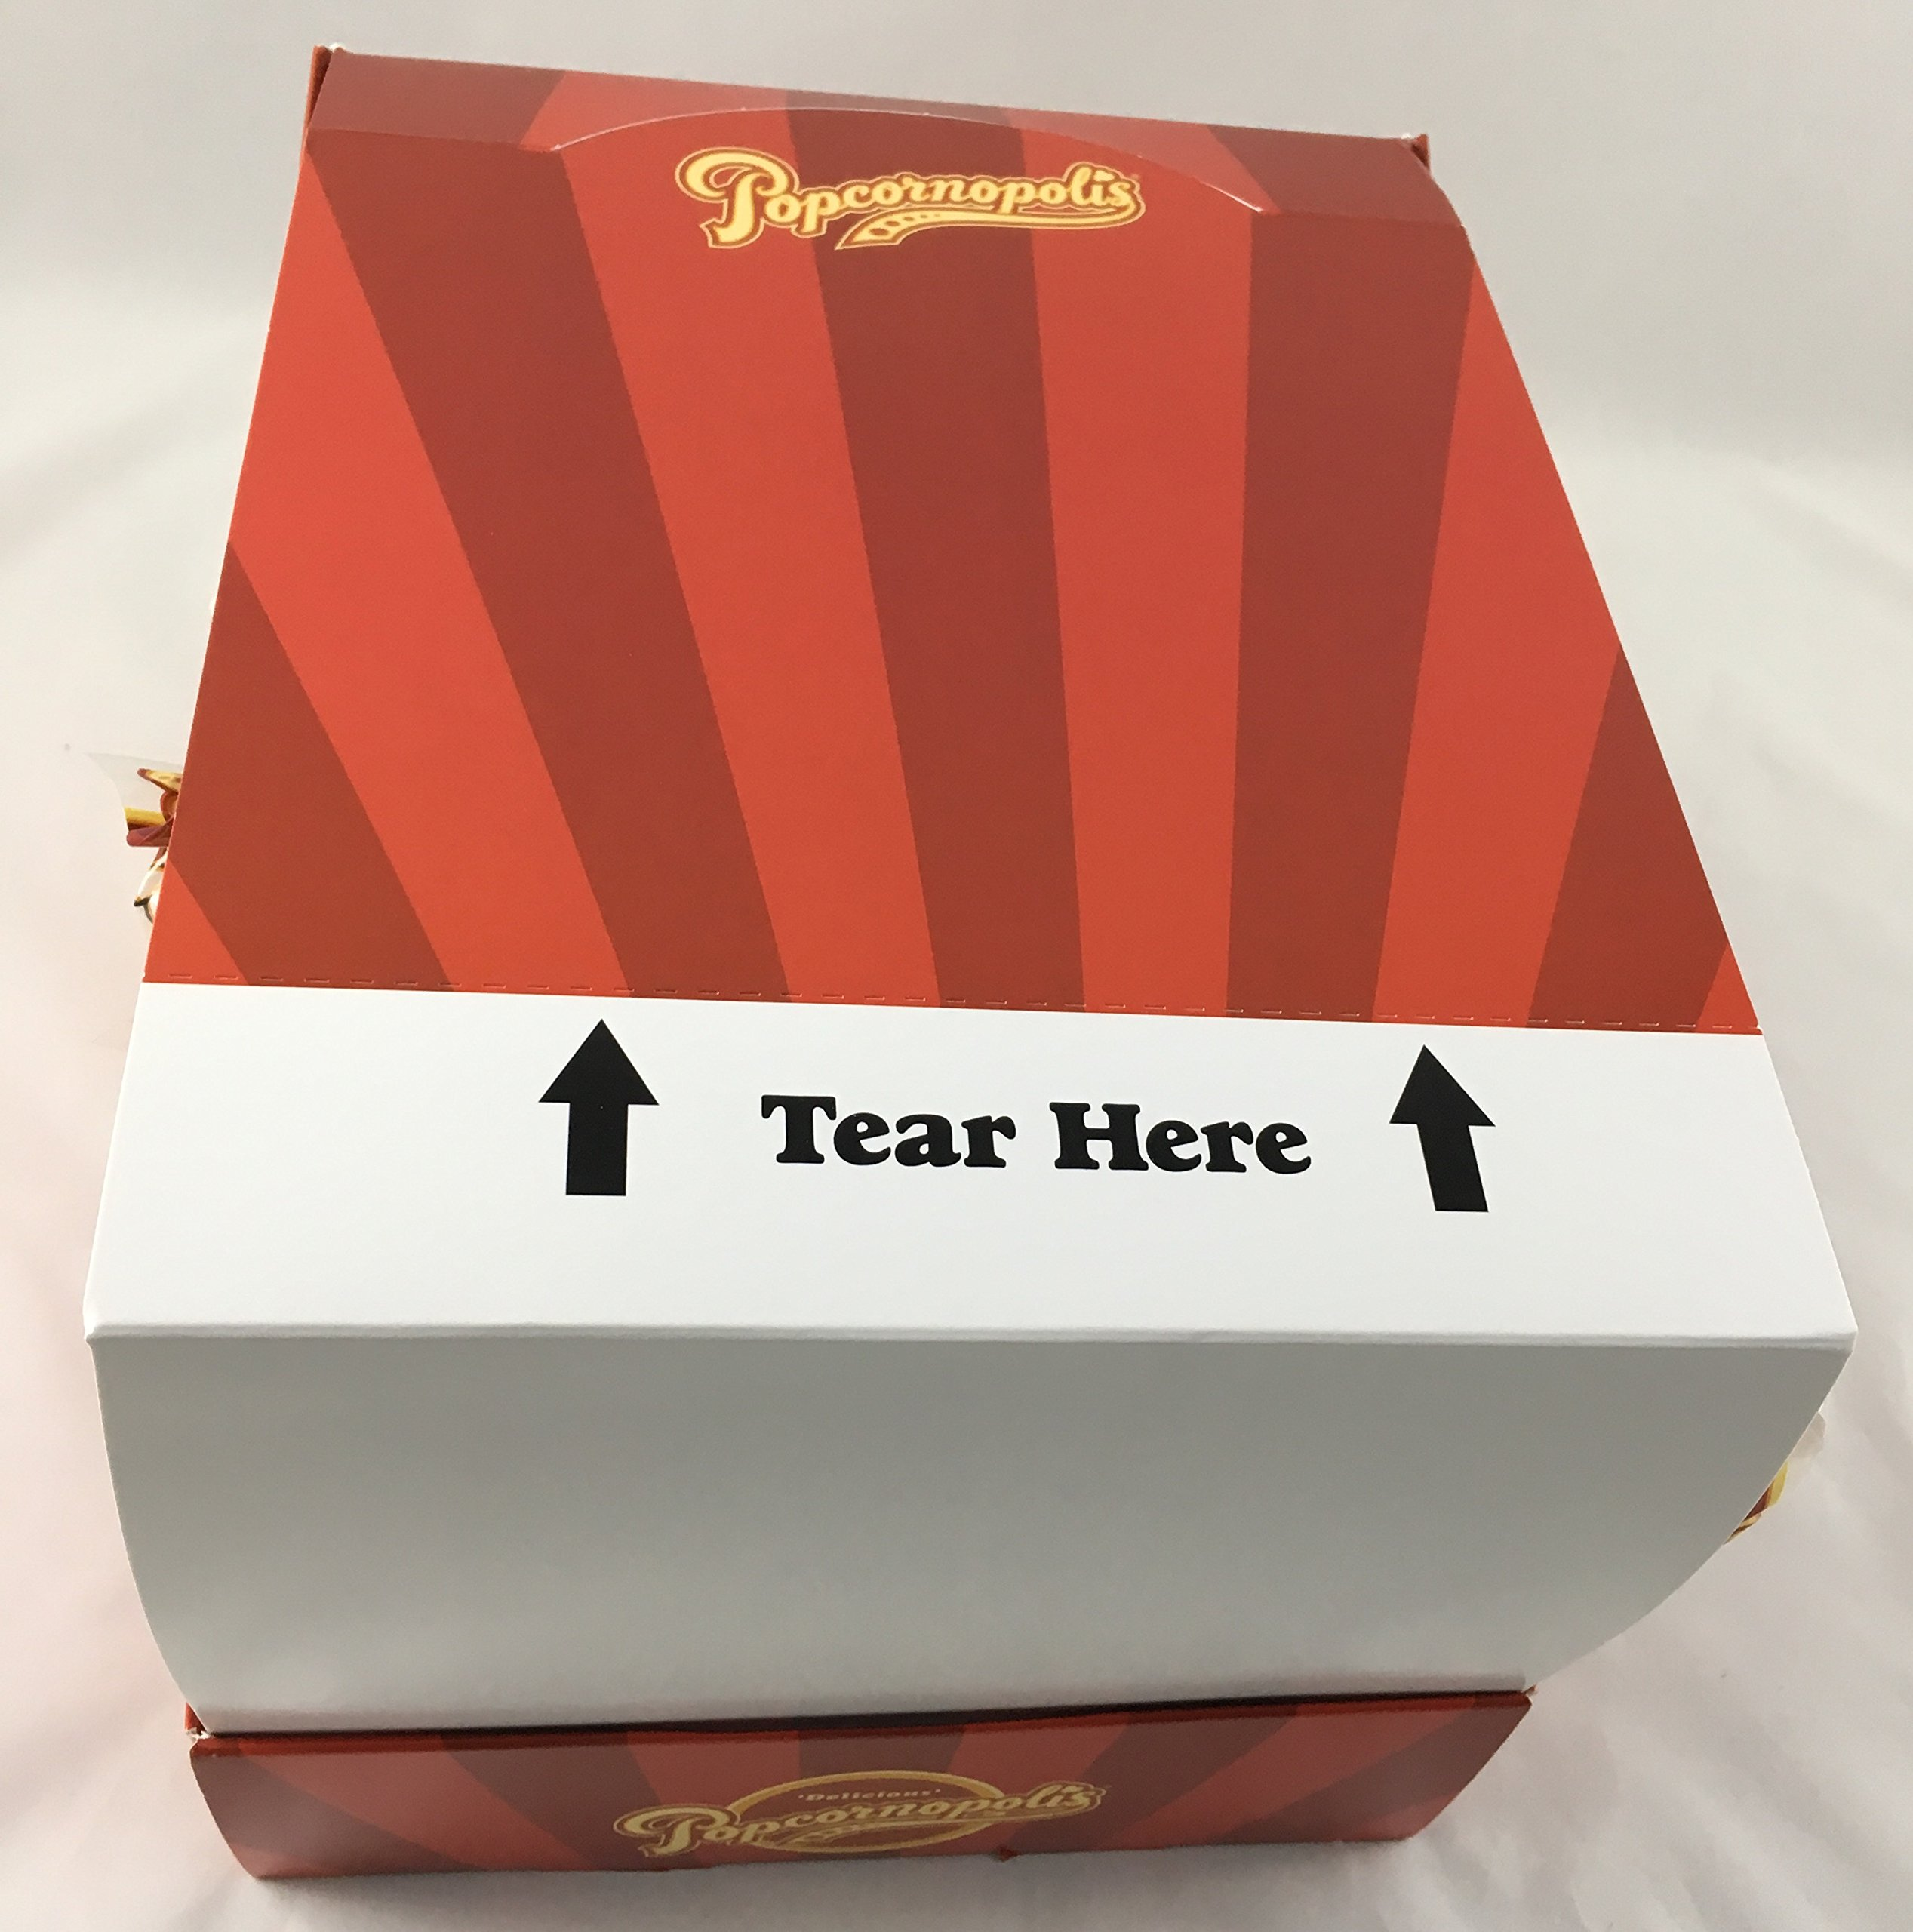 Popcornopolis Caramel Mini Cones 24ct. with Display Box, Great for Party Favors, & Snackrooms by Popcornopolis (Image #3)